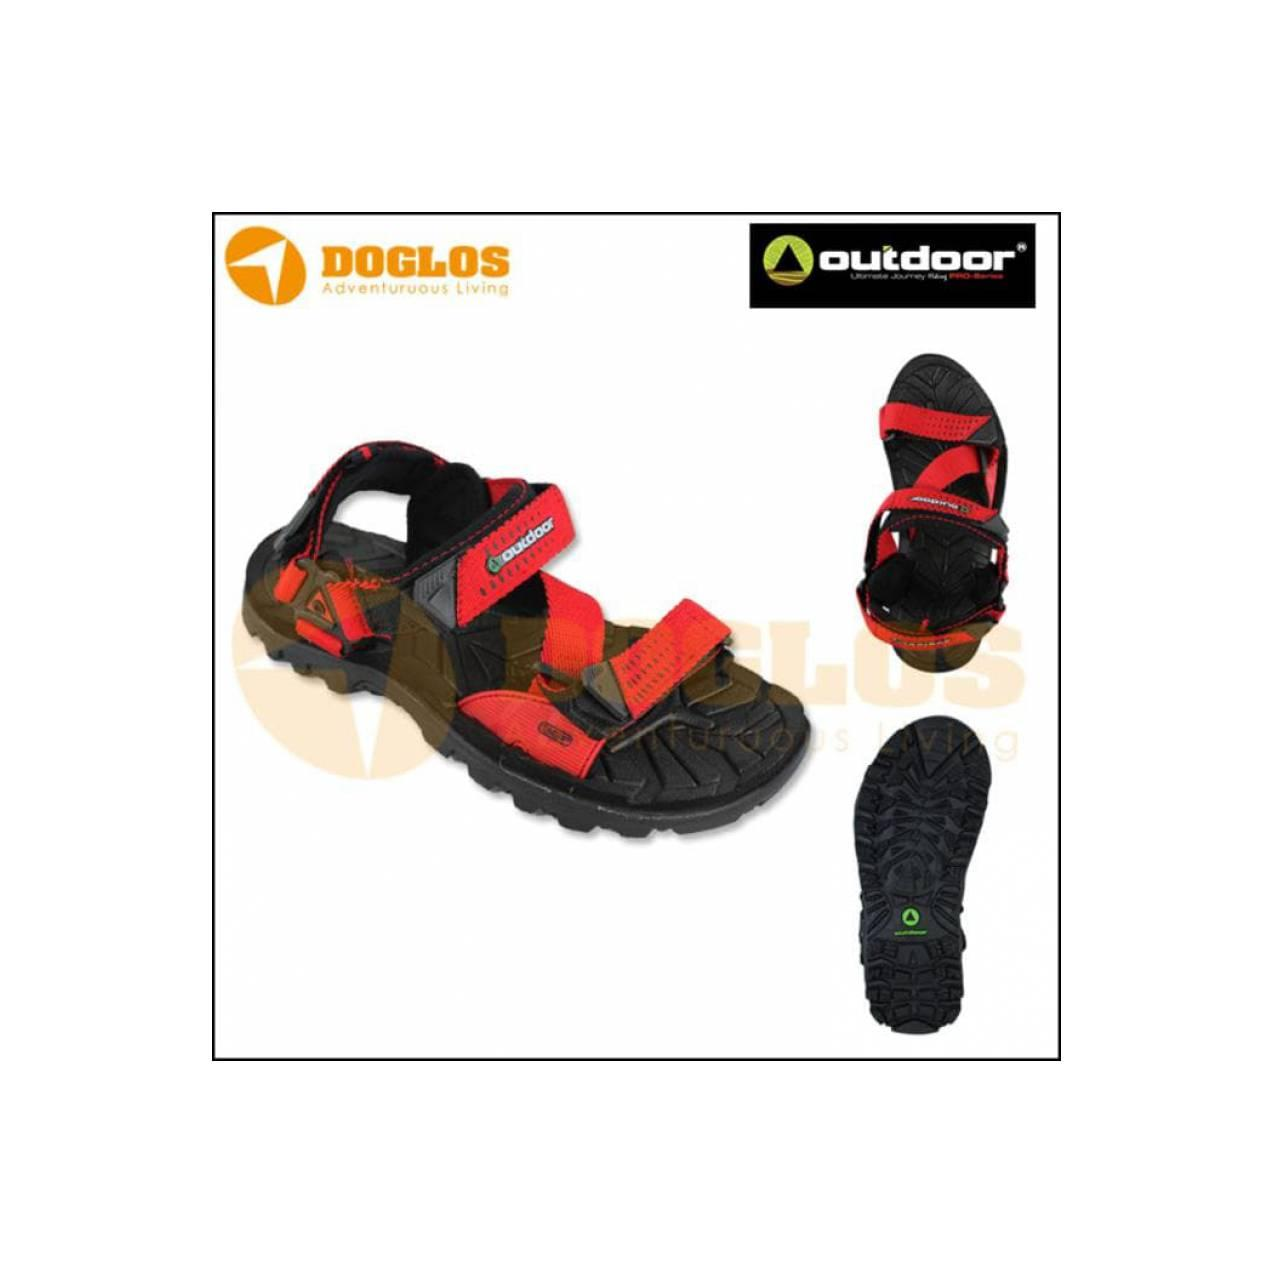 Sandal Gunung - Outdoor Aragon Red (Sendal/Selop/Not Eiger/Footwear)